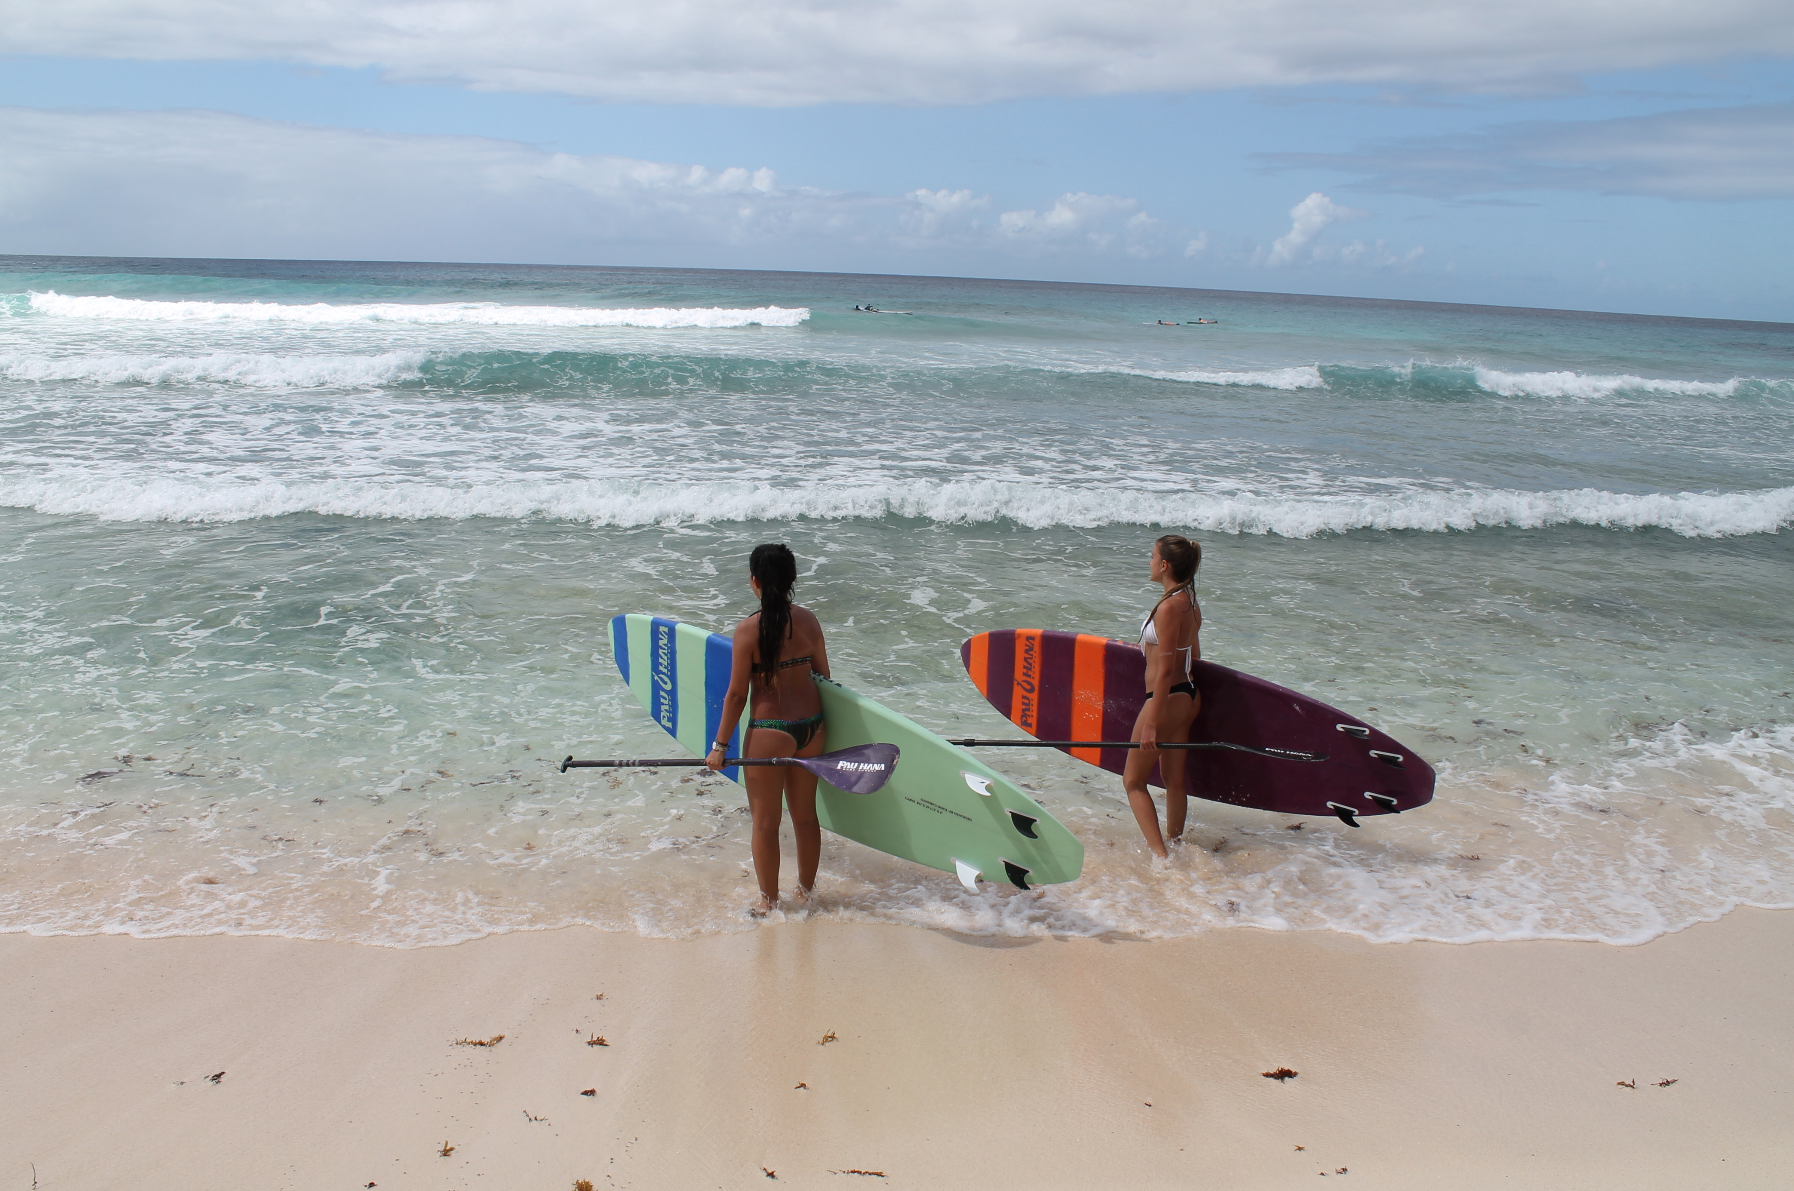 Surfboards in barbados